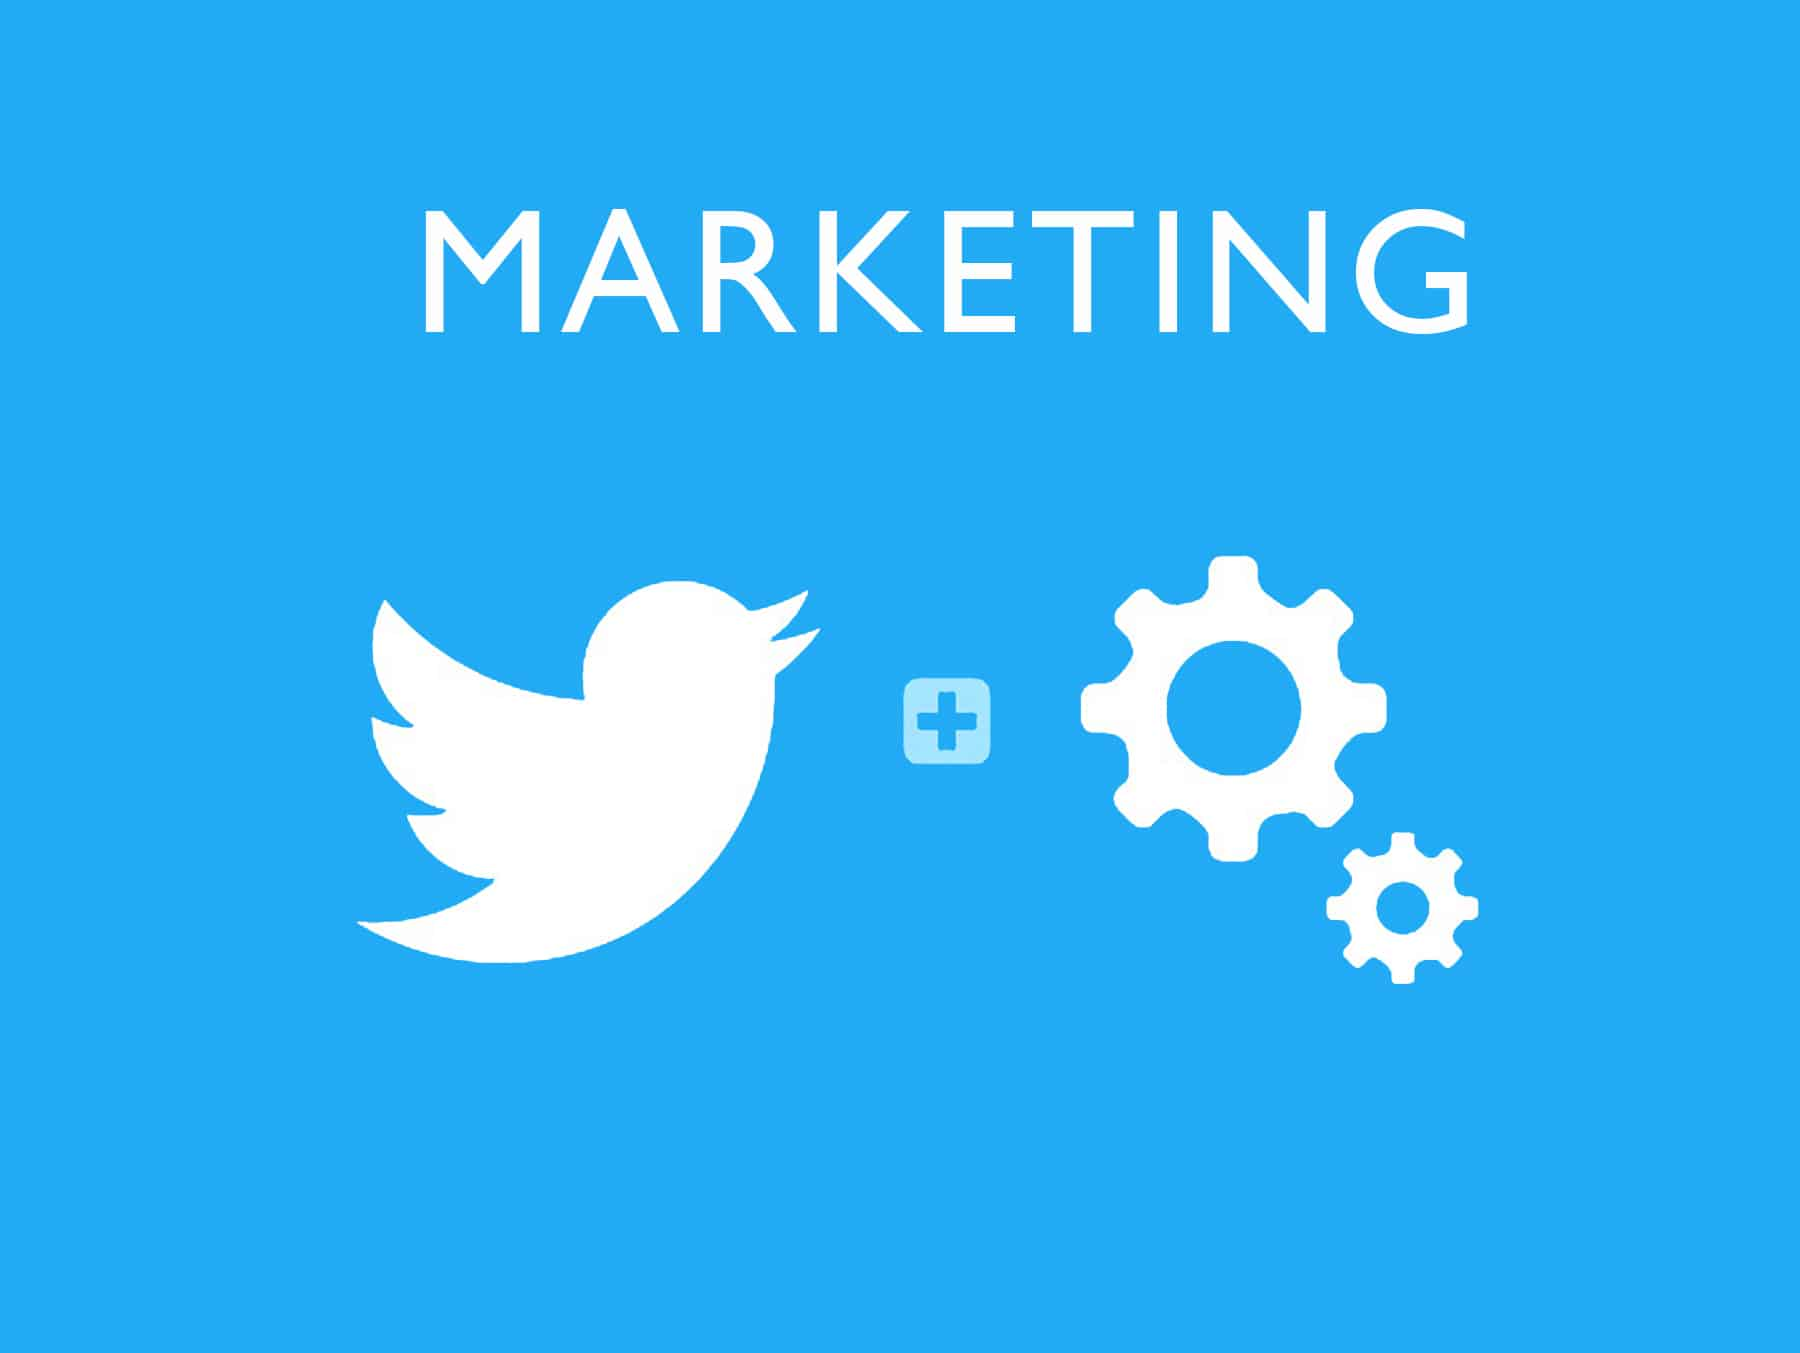 Five Things That Possibly Make Twitter as Your Main Marketing Platform Three Things That Possibly Make Twitter as Your Main Marketing Platform